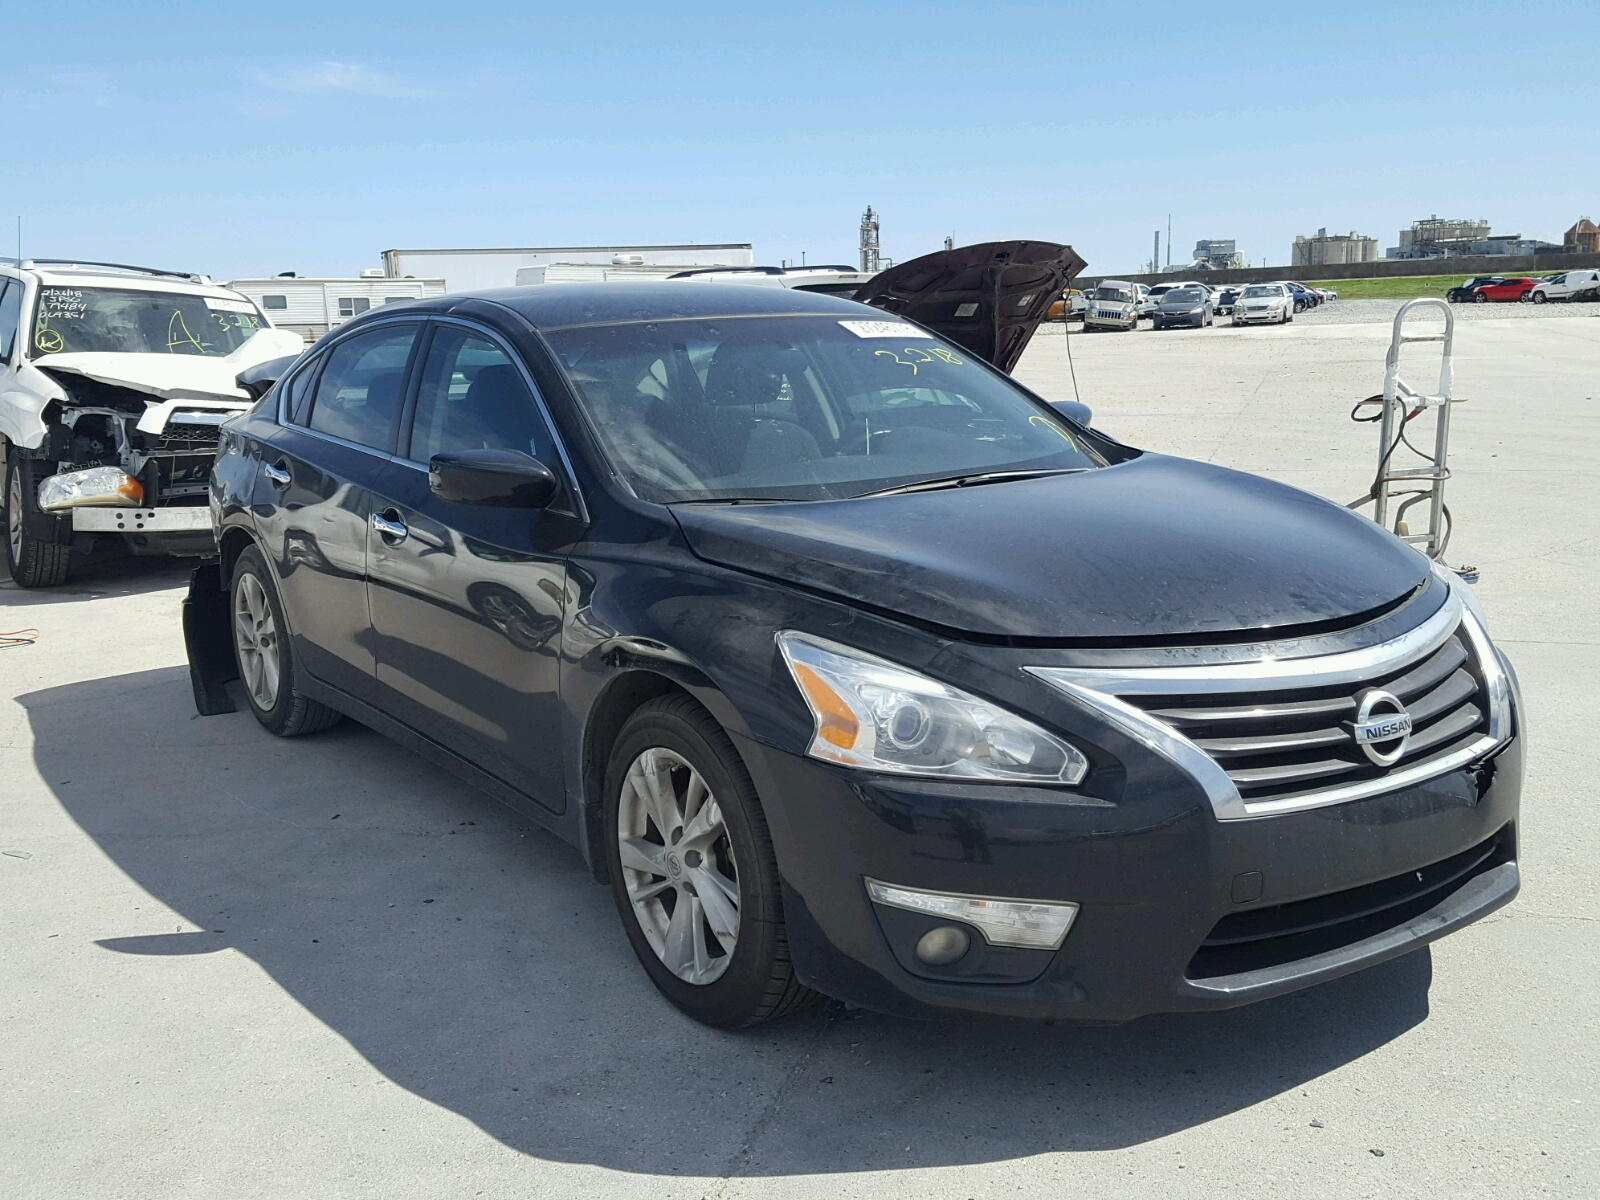 new nola for less bowers nissan orleans in img dollars dealers and of cars at than used matt sale